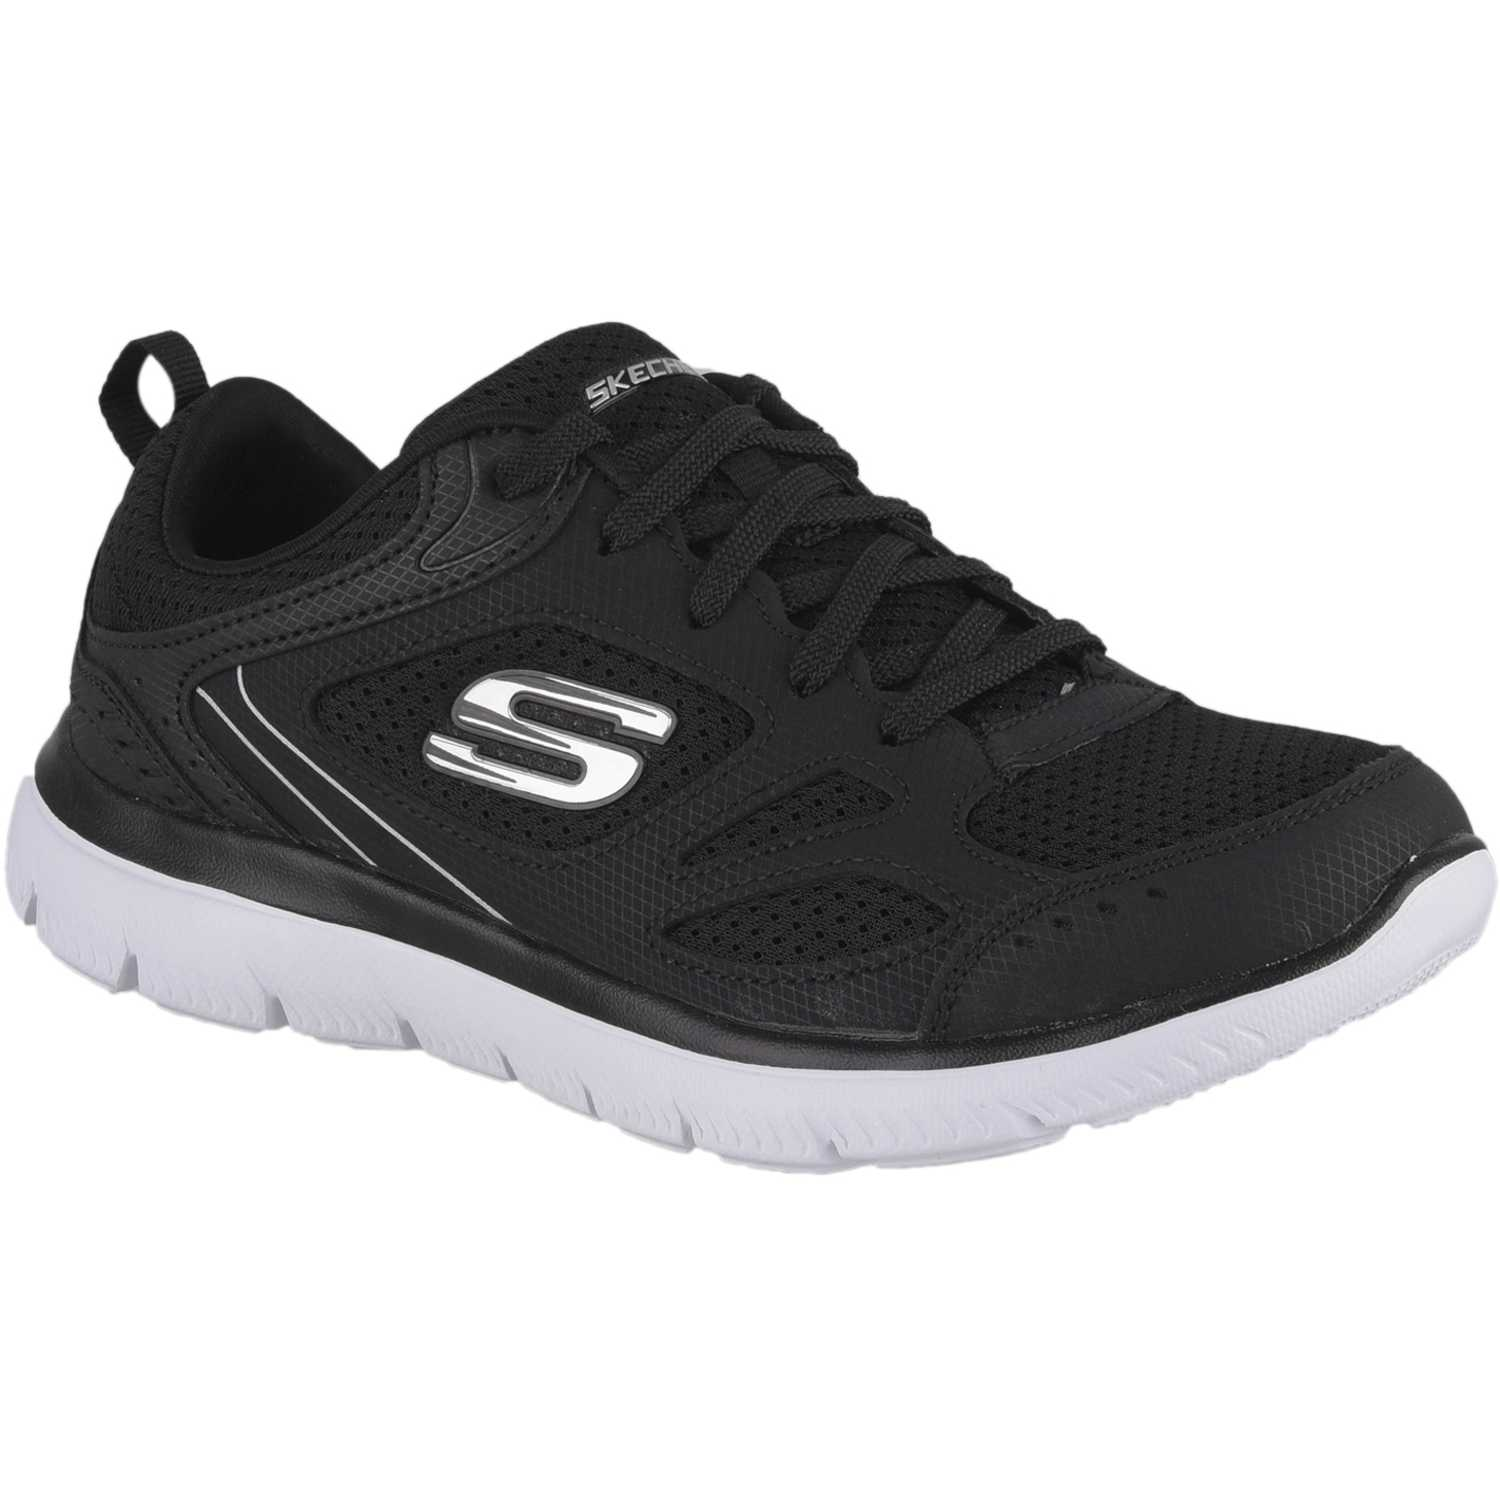 Skechers summits Negro / plomo Walking